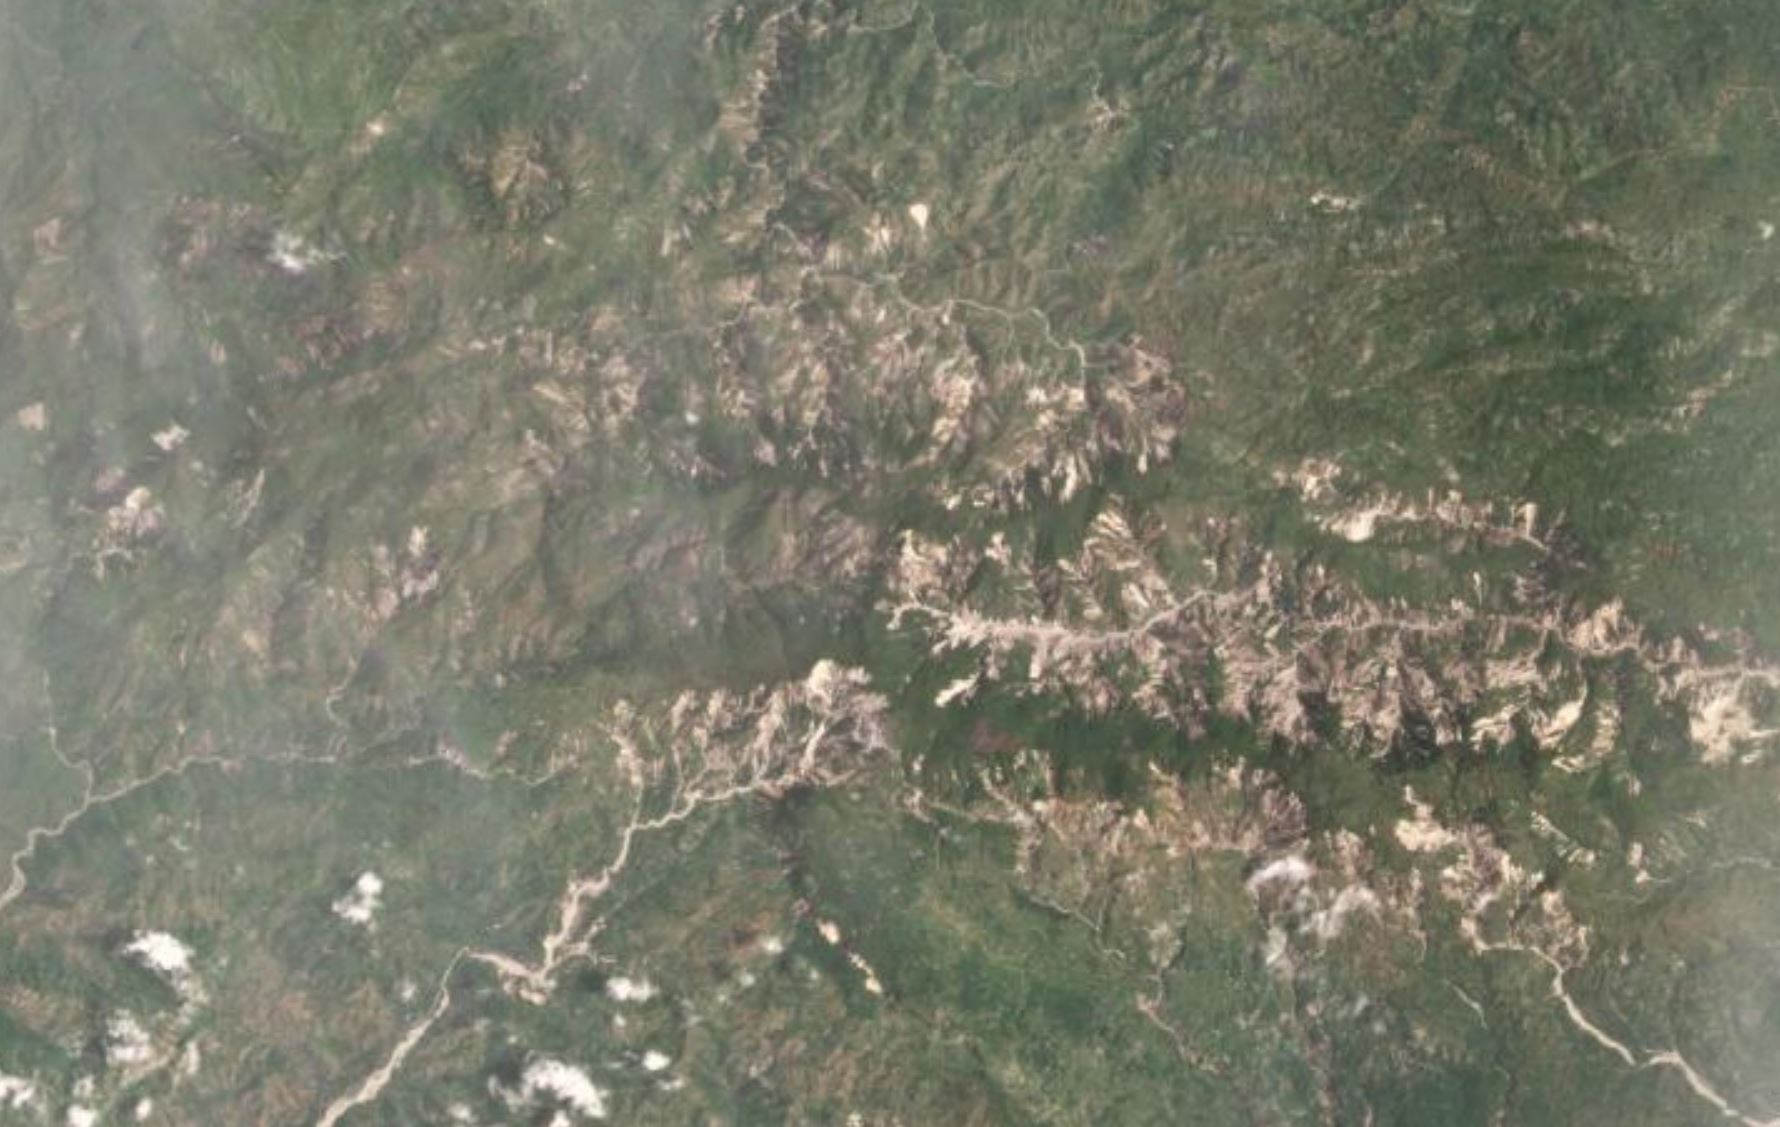 The area around Pic Macaya National Park that was affected by the 14 August 2021 earthquake in Haiti.